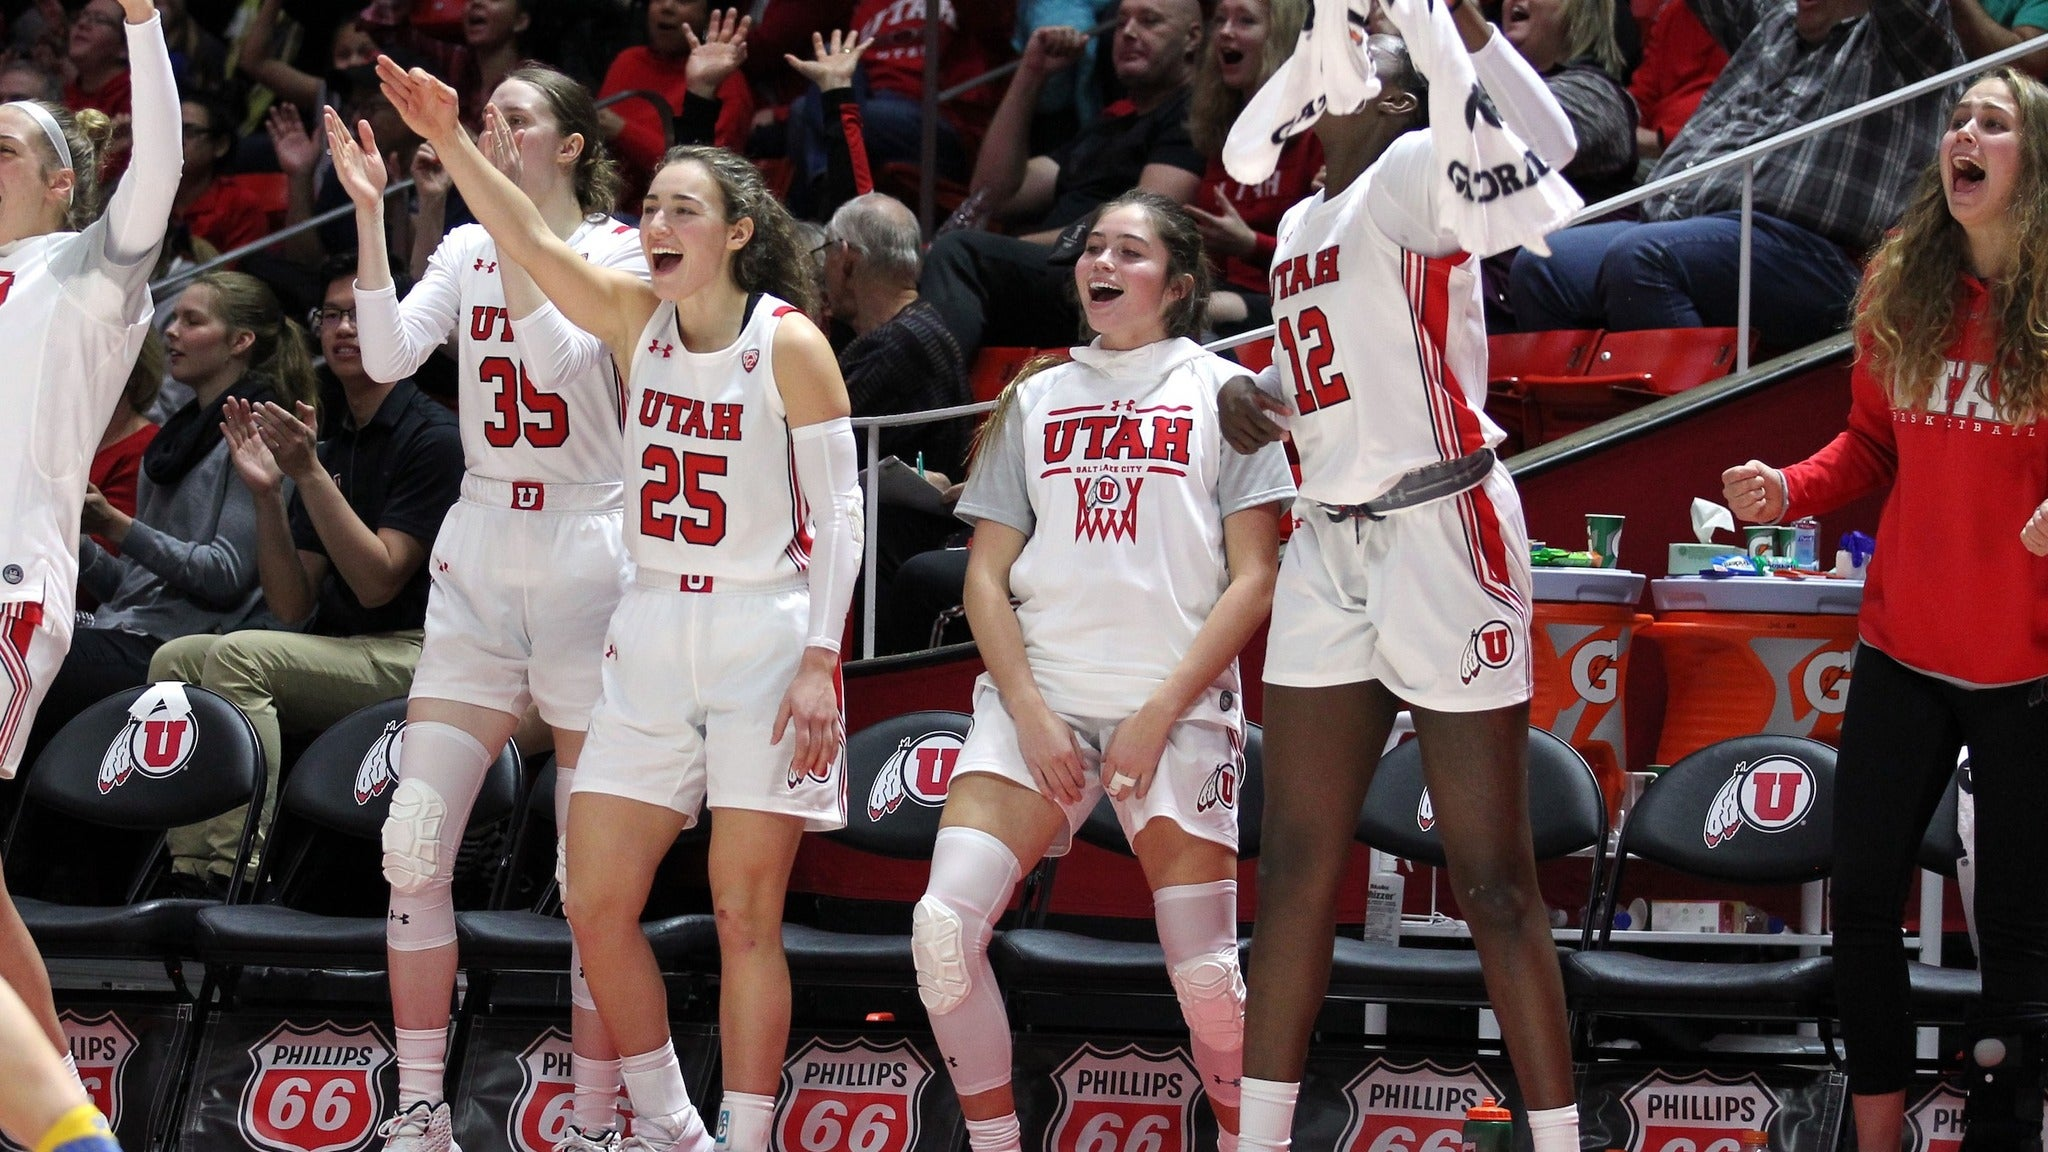 20-21 Utah Women's Basketball Full Season Tickets